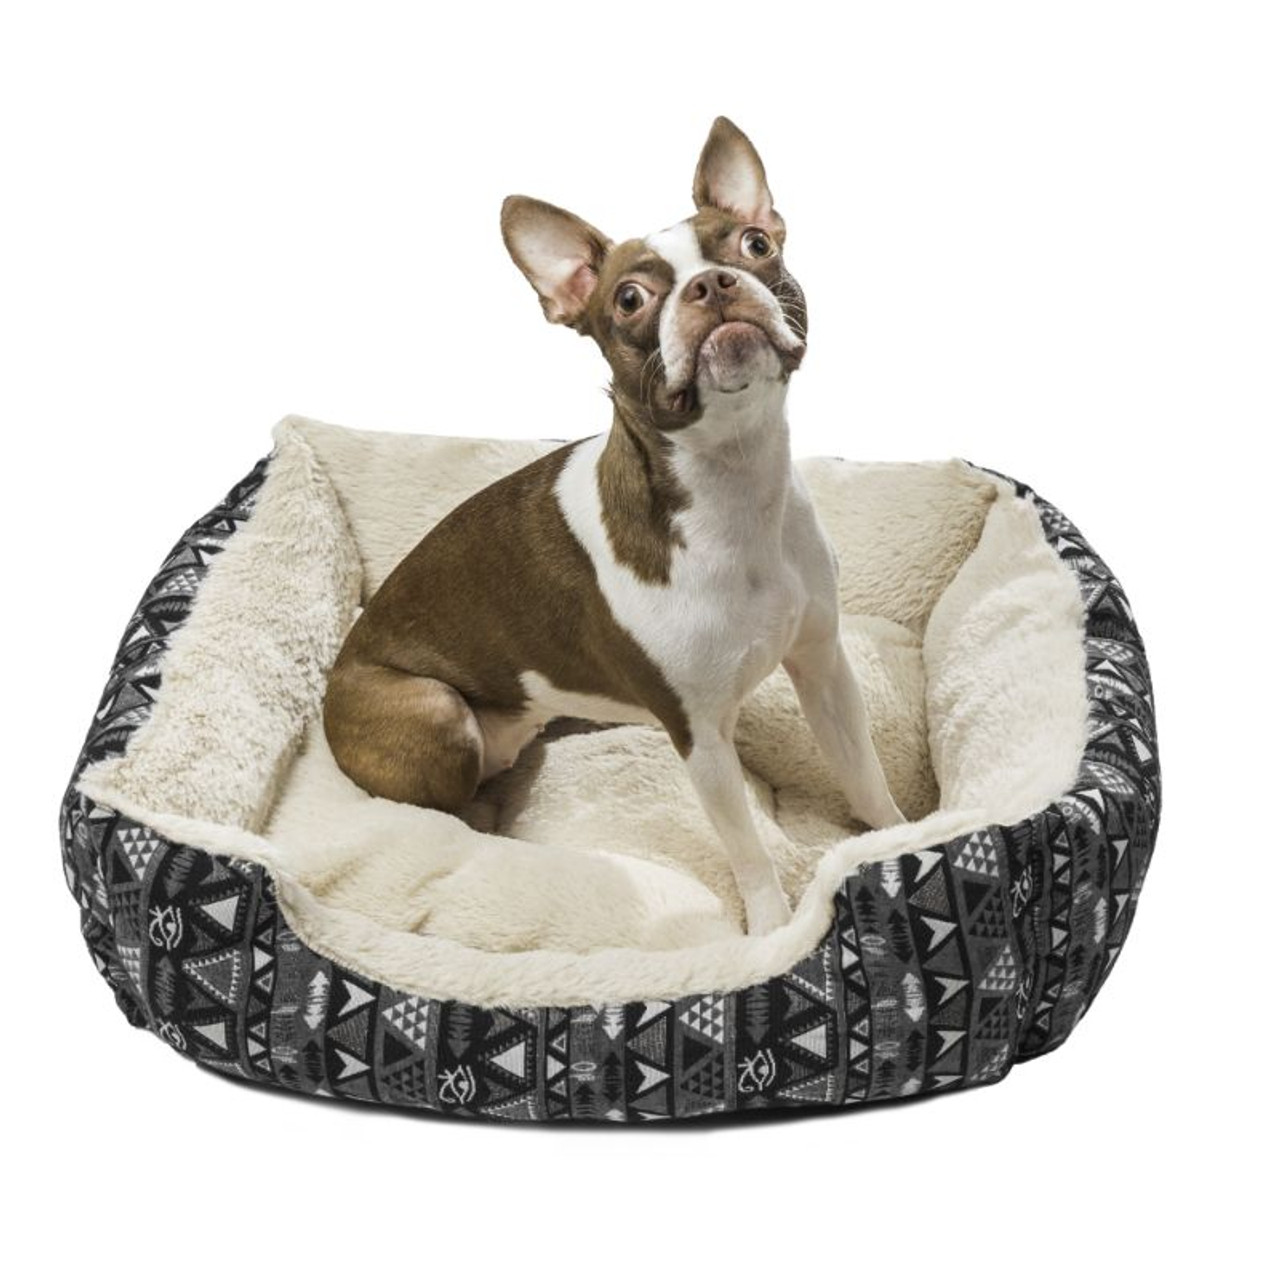 Printed Orthopedic Pet Bed Bolster for Dogs and Cats